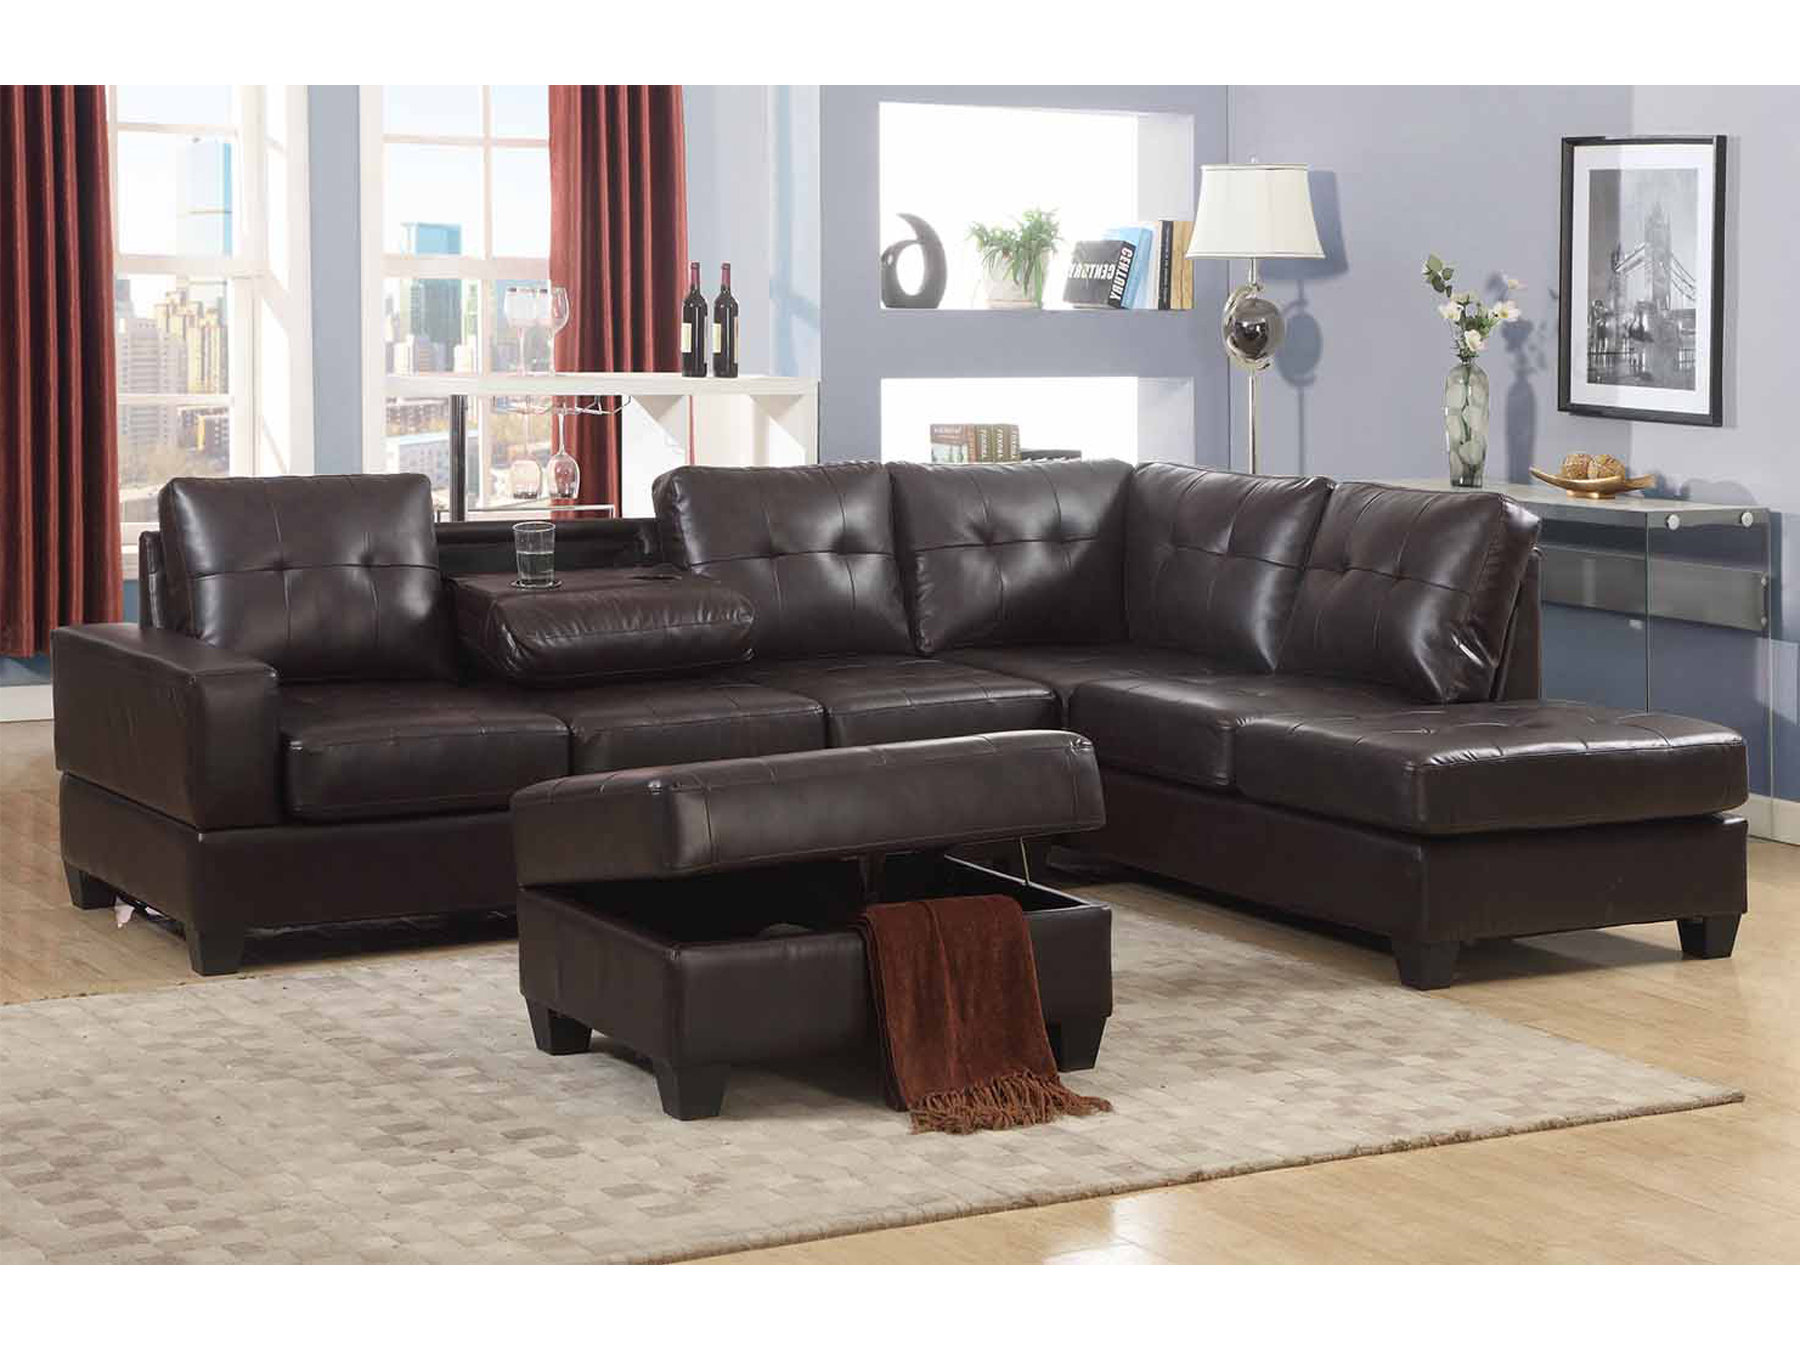 3 Piece Sectional Sofa With Ottoman Lounge Ii 3piece Sectional